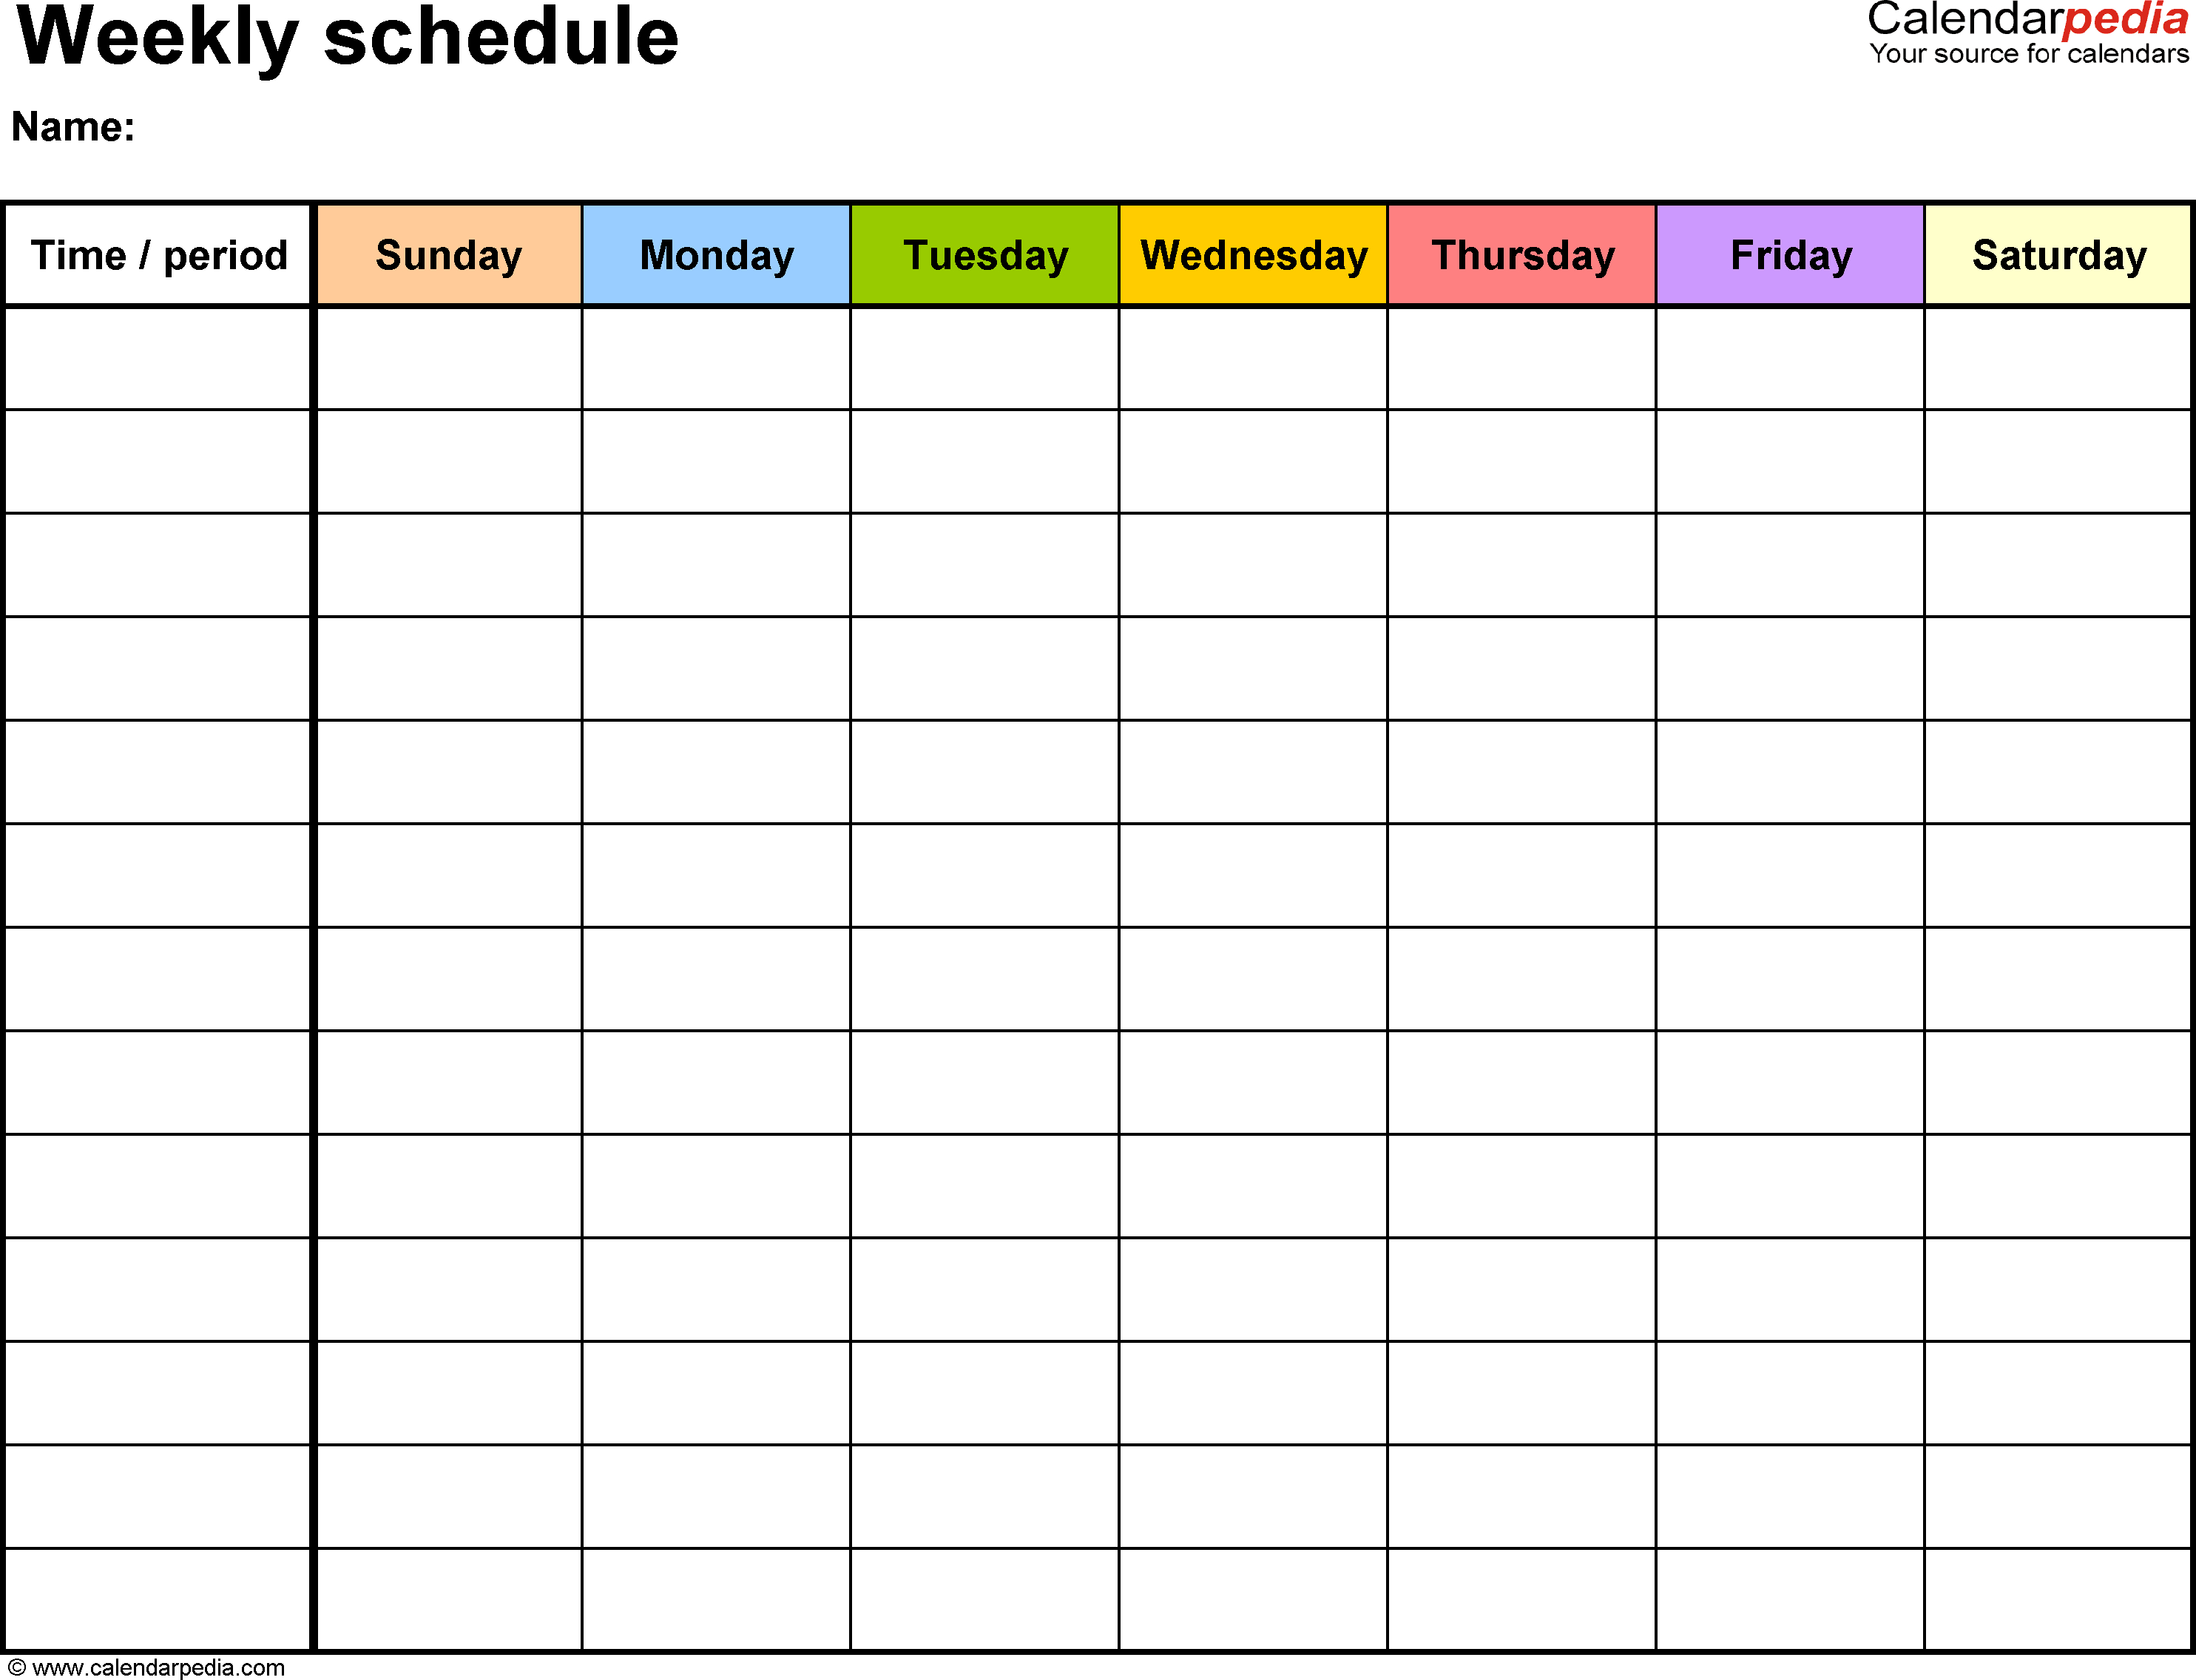 Free Weekly Schedule Templates For Excel   18 Templates Inside Monthly Staff Schedule Template